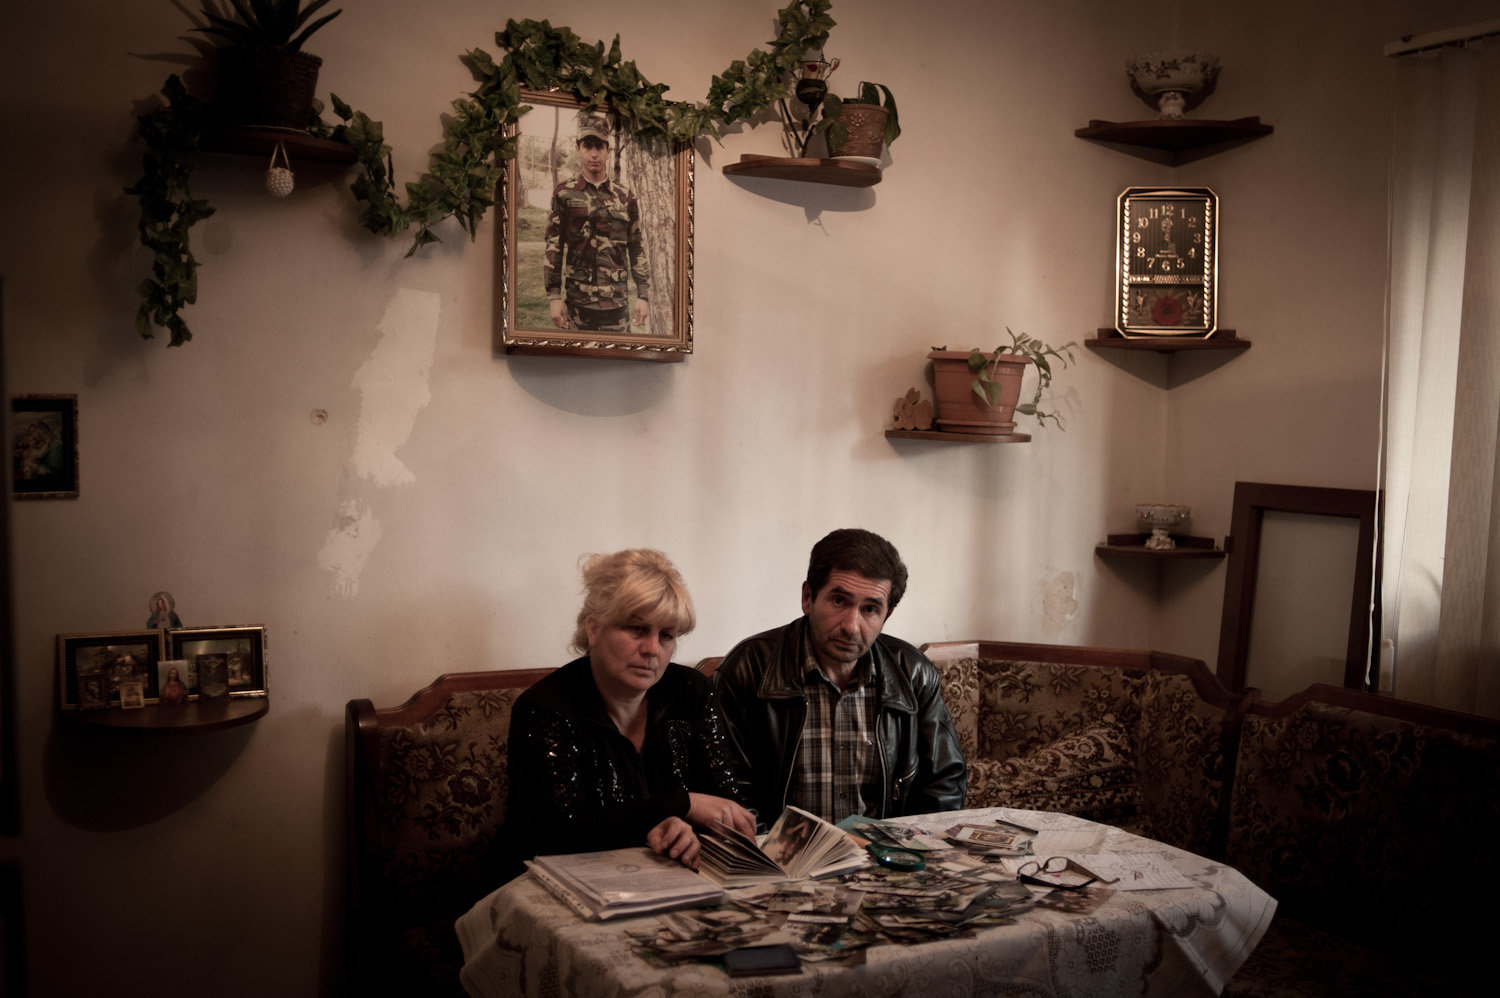 Arthur's parents Smbat and Irina sit beneath their son's portrait sifting through case files, paperwork and autopsy photographs related to their son's death.